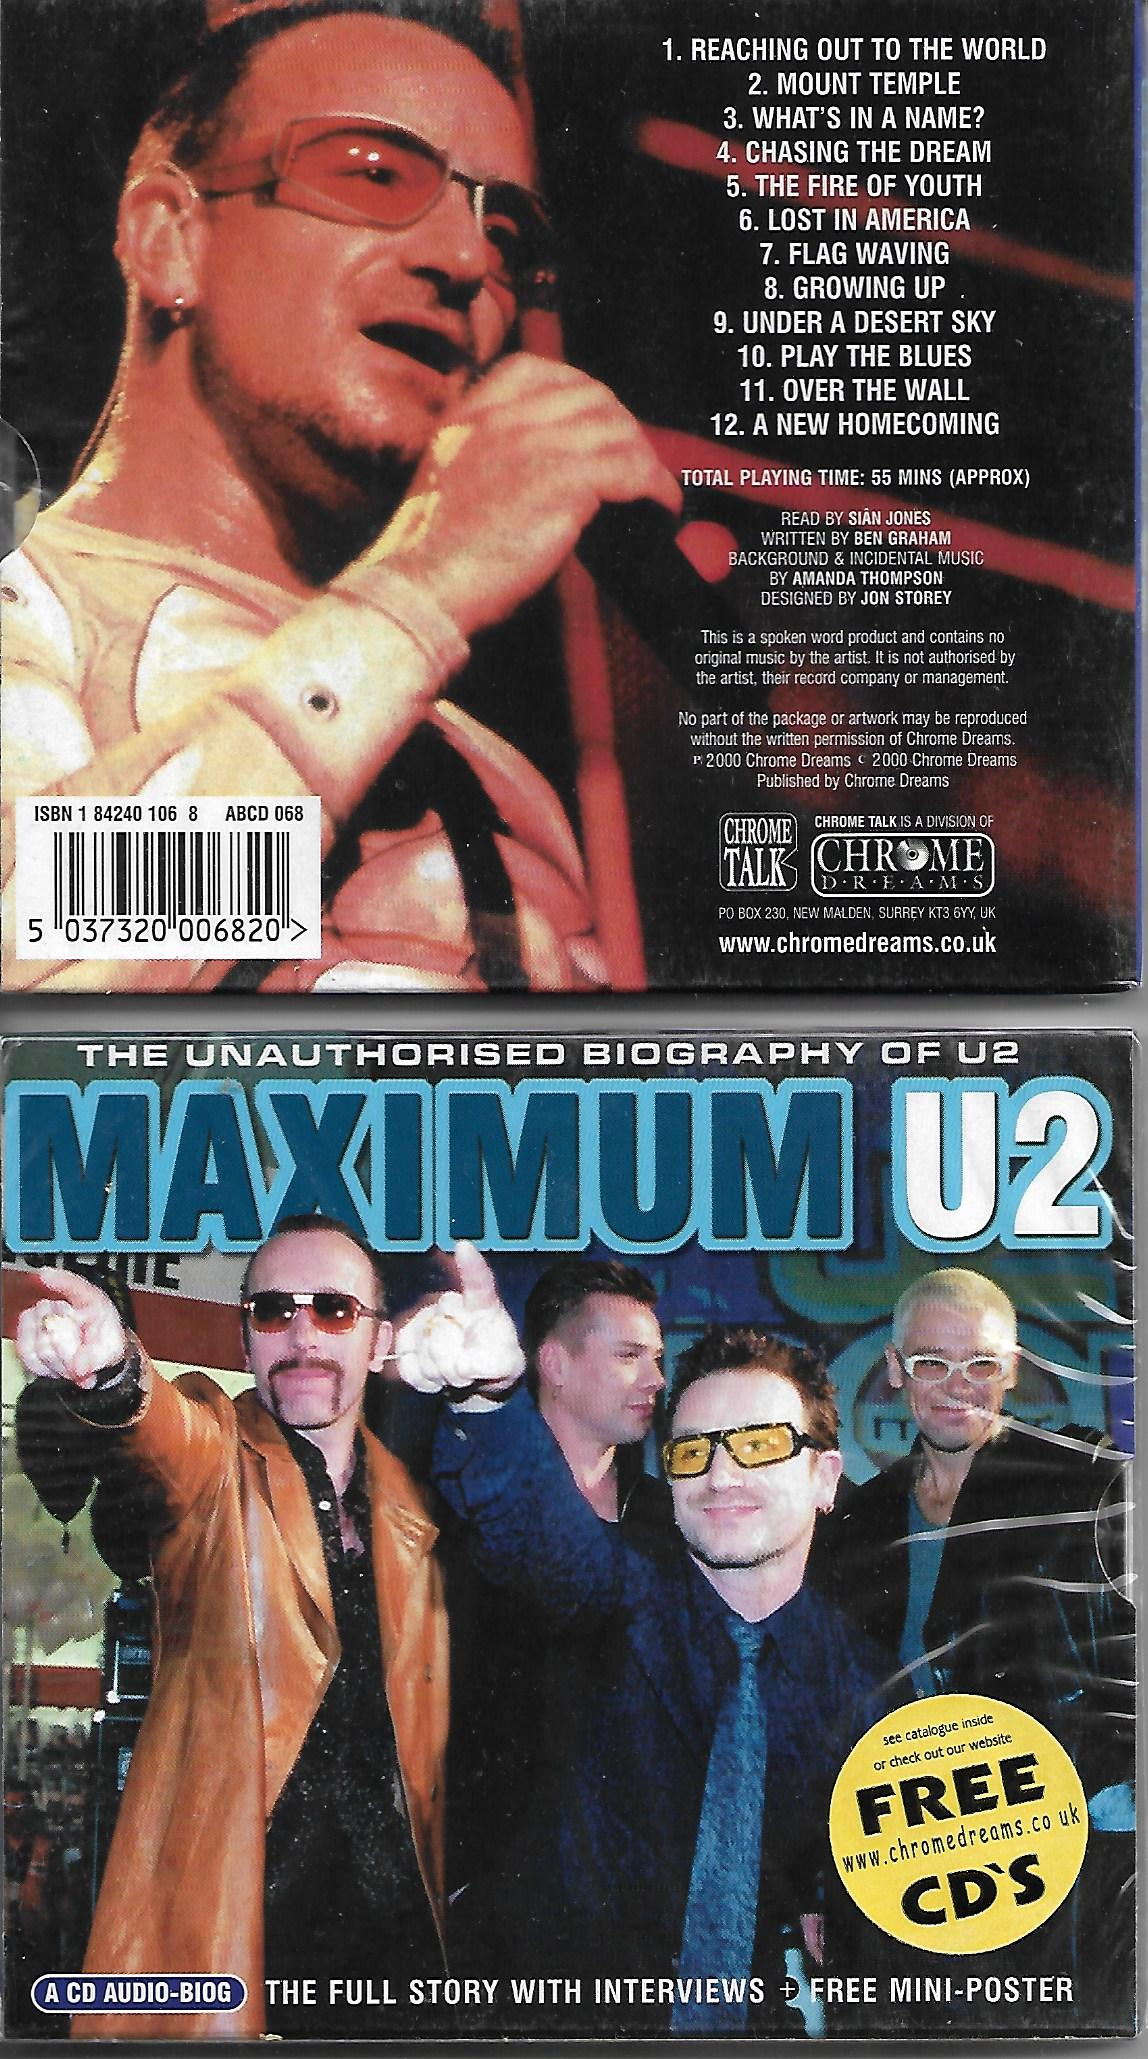 Maximum U2